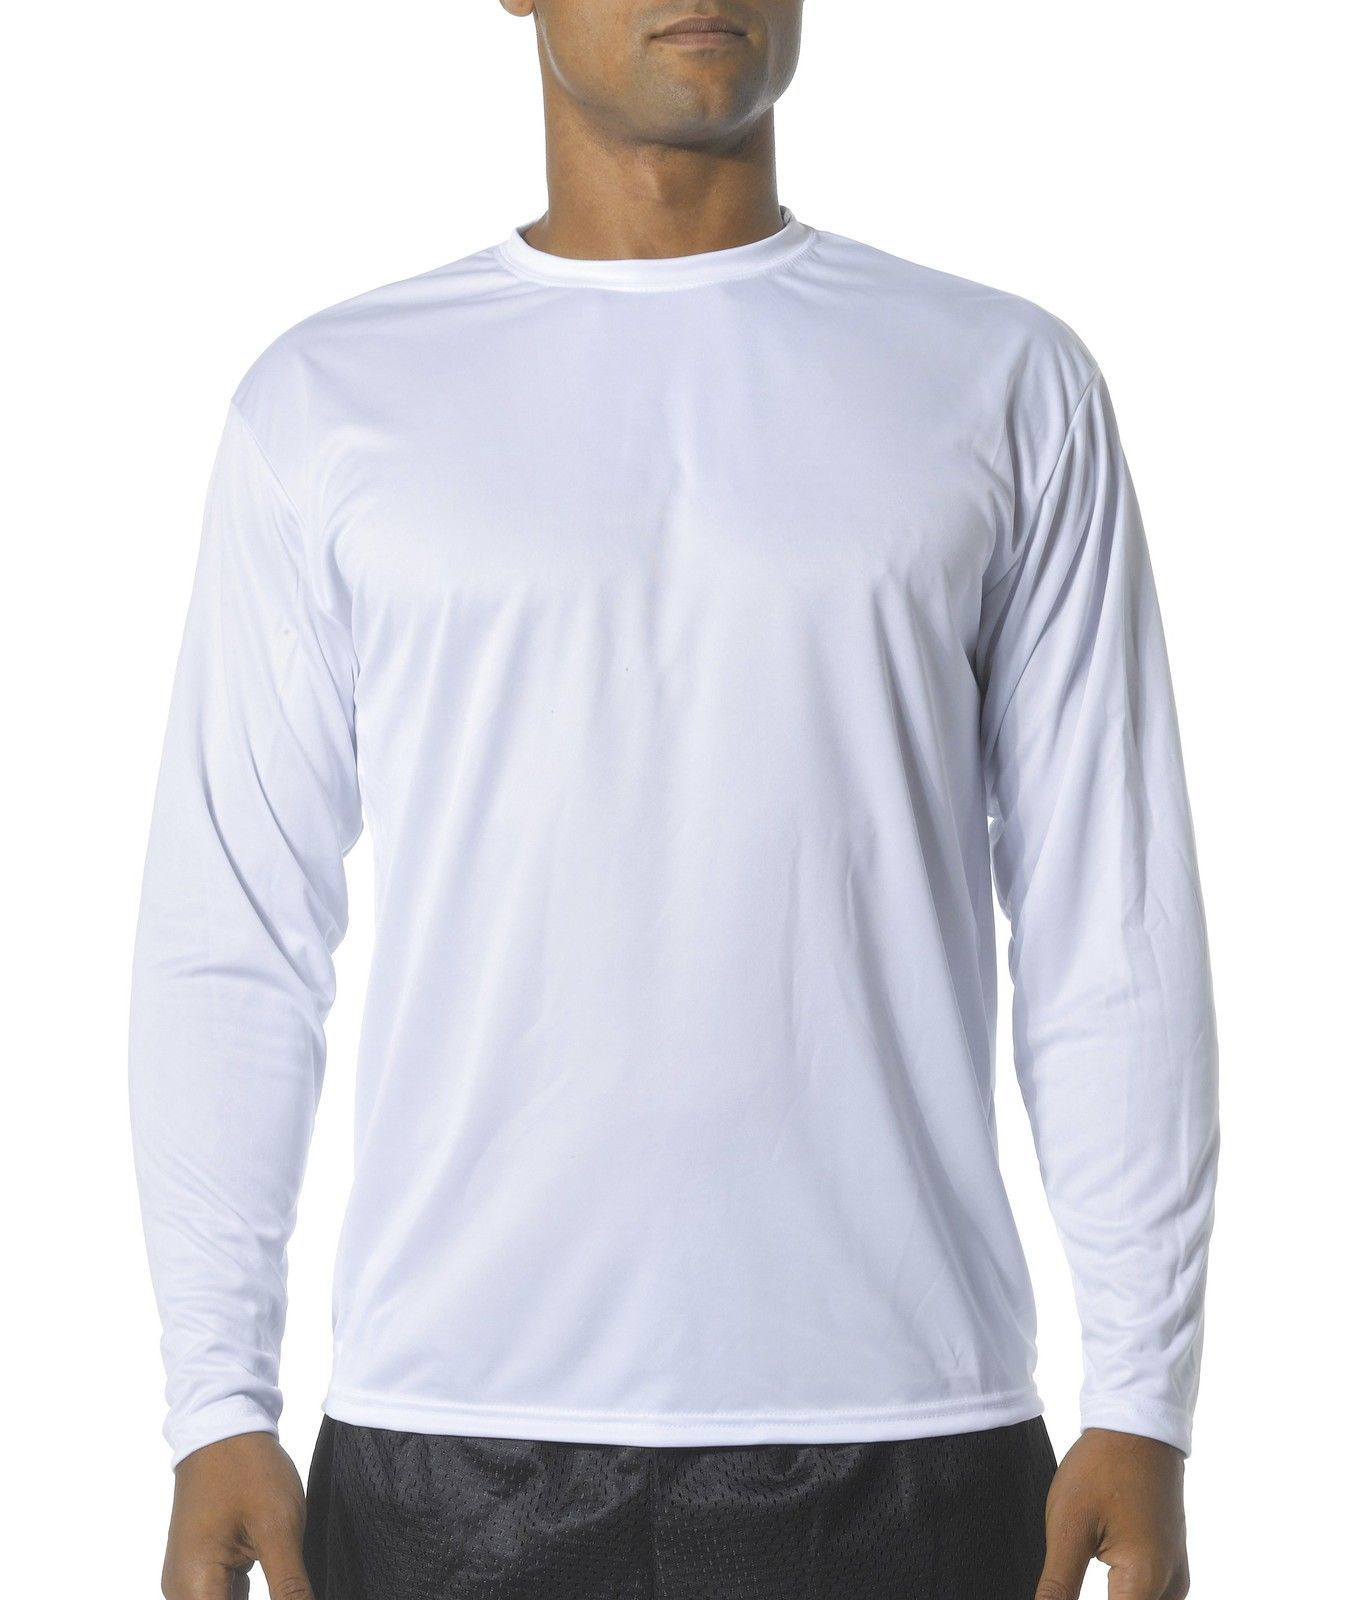 Details About A4 Men S Long Sleeve Cooling Performance Polyester